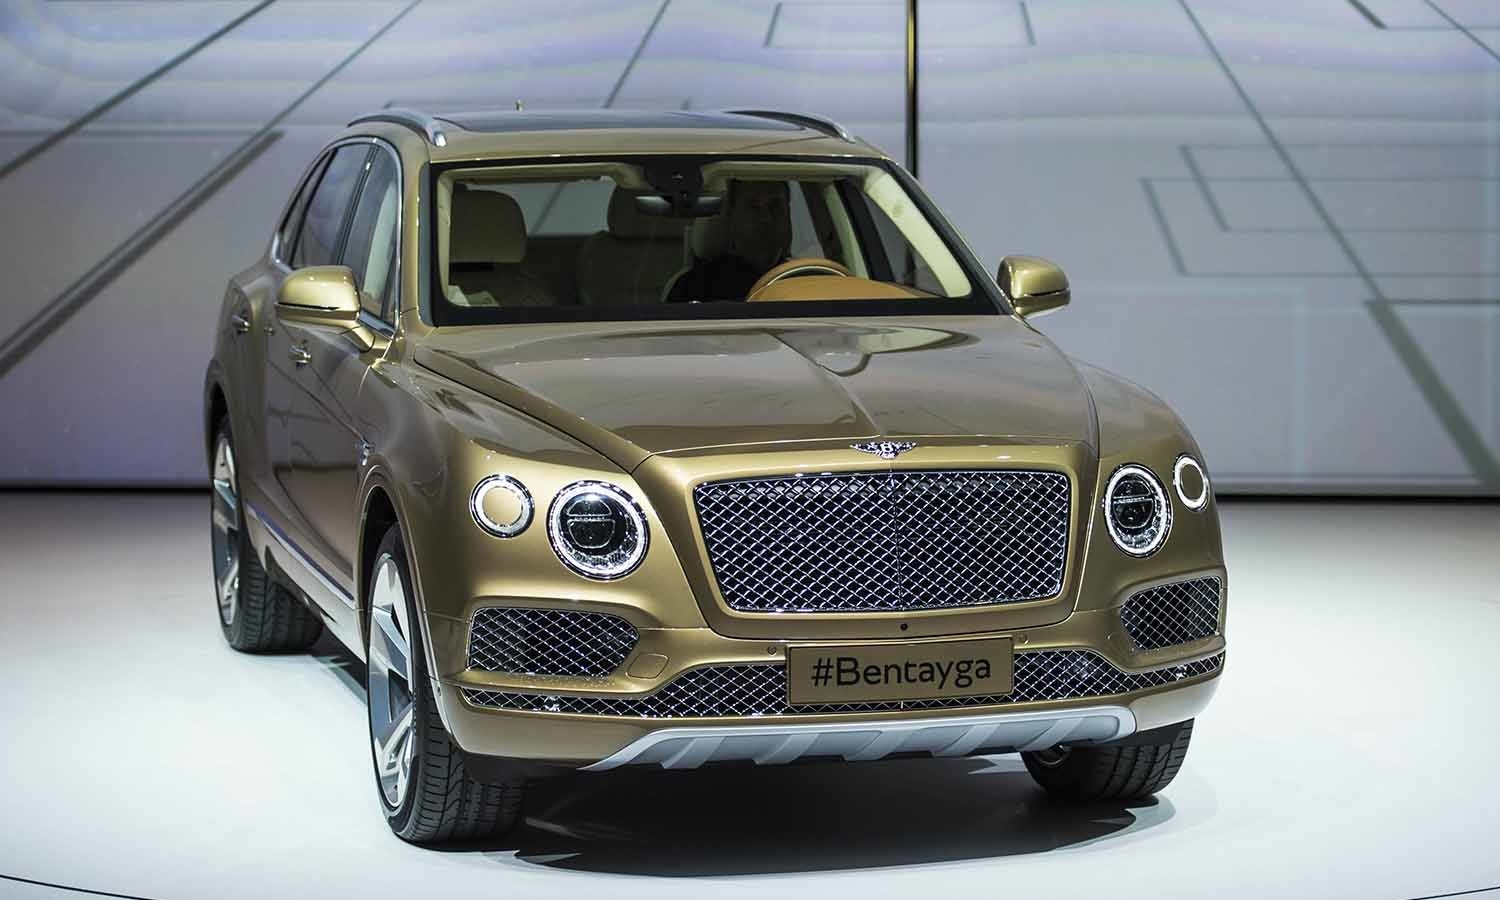 The luxury SUV Bentley Bentayga car is presented during the Volkswagen group night. ─ AFP